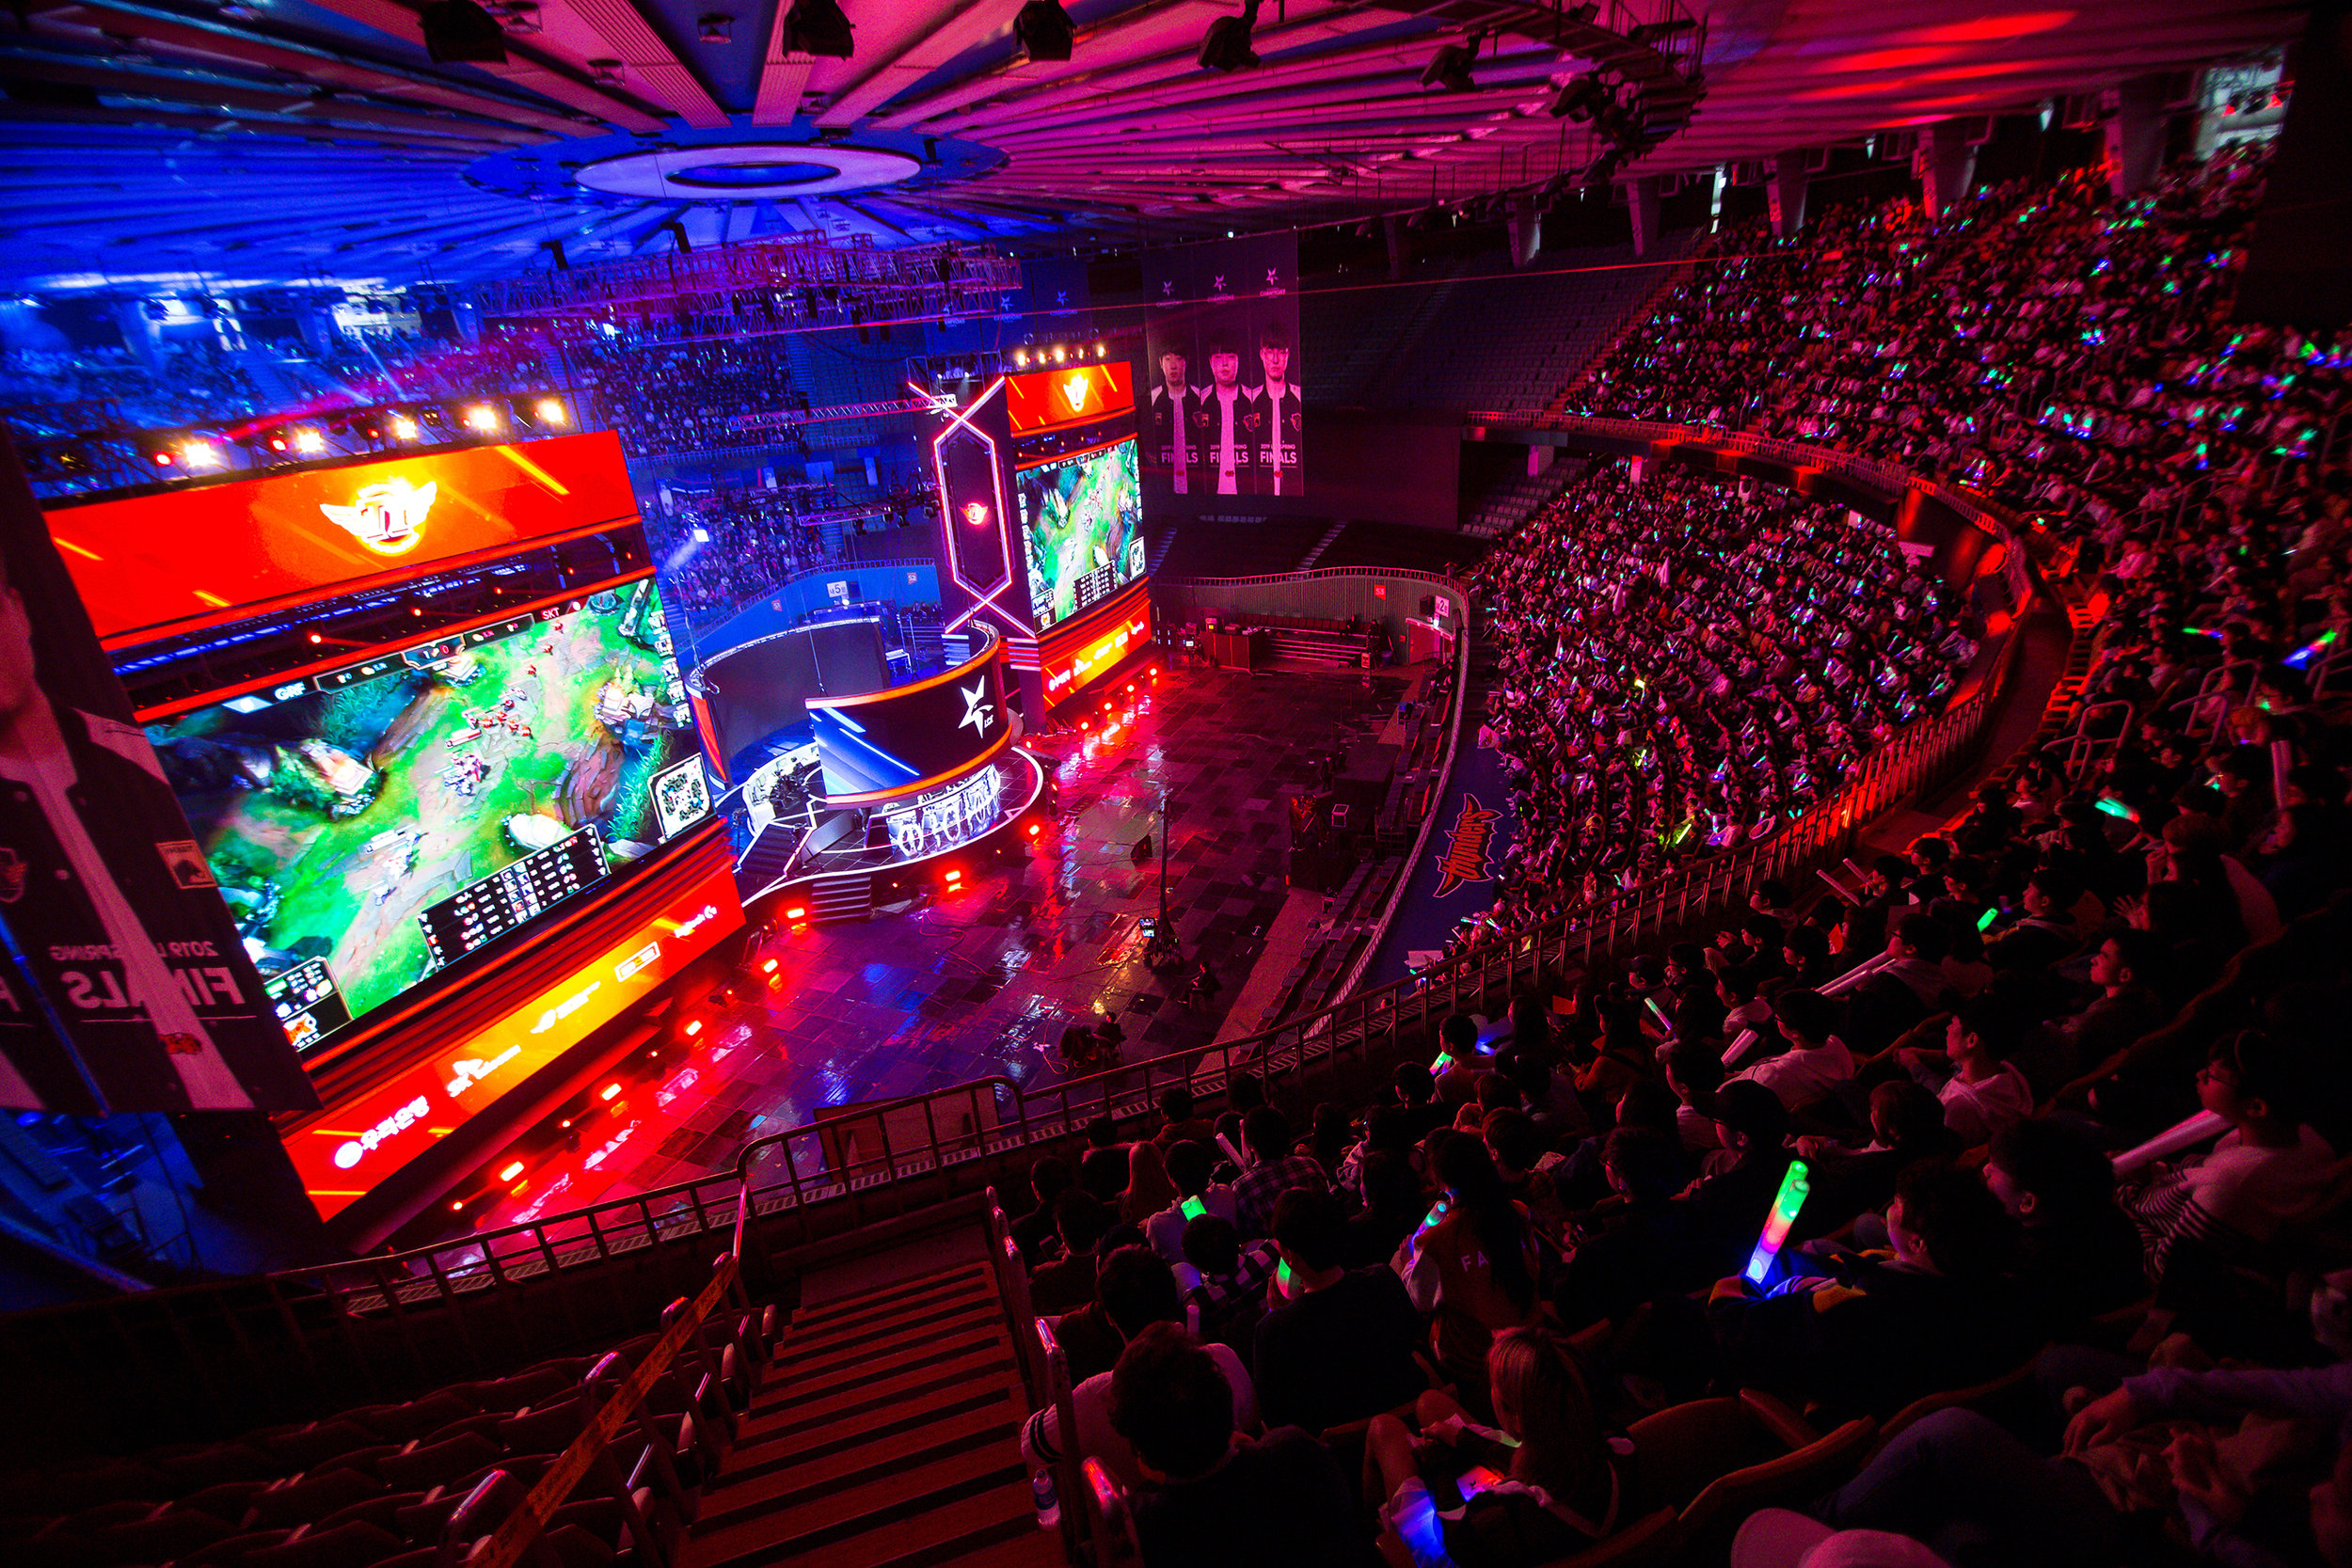 SEOUL, SOUTH KOREA - APRIL 13: Audience watching every round of gameplay on stage while SK Telecom T1 wins 3-0 over Griffin at LCK Spring Finals at Jamsil Sports Center on April 13, 2019 in Seoul, Korea. Photo by Timo Verdeil/ESPAT Media